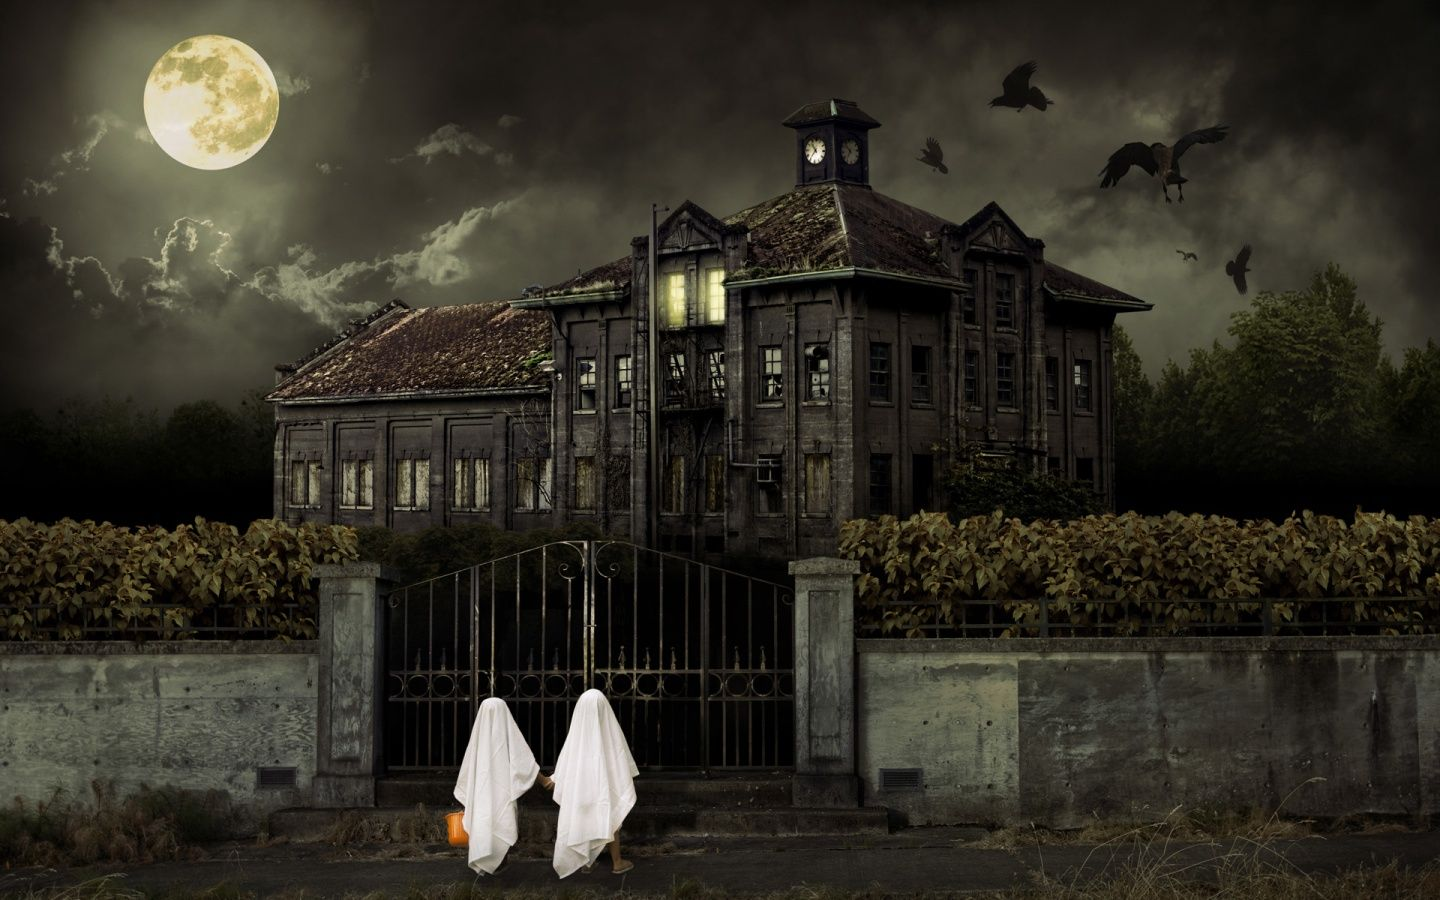 Halloween Haunted House Wallpaper | Halloween Haunted House HD Wallpaper,  Haunted HD Wallpaper, 3D Horror .